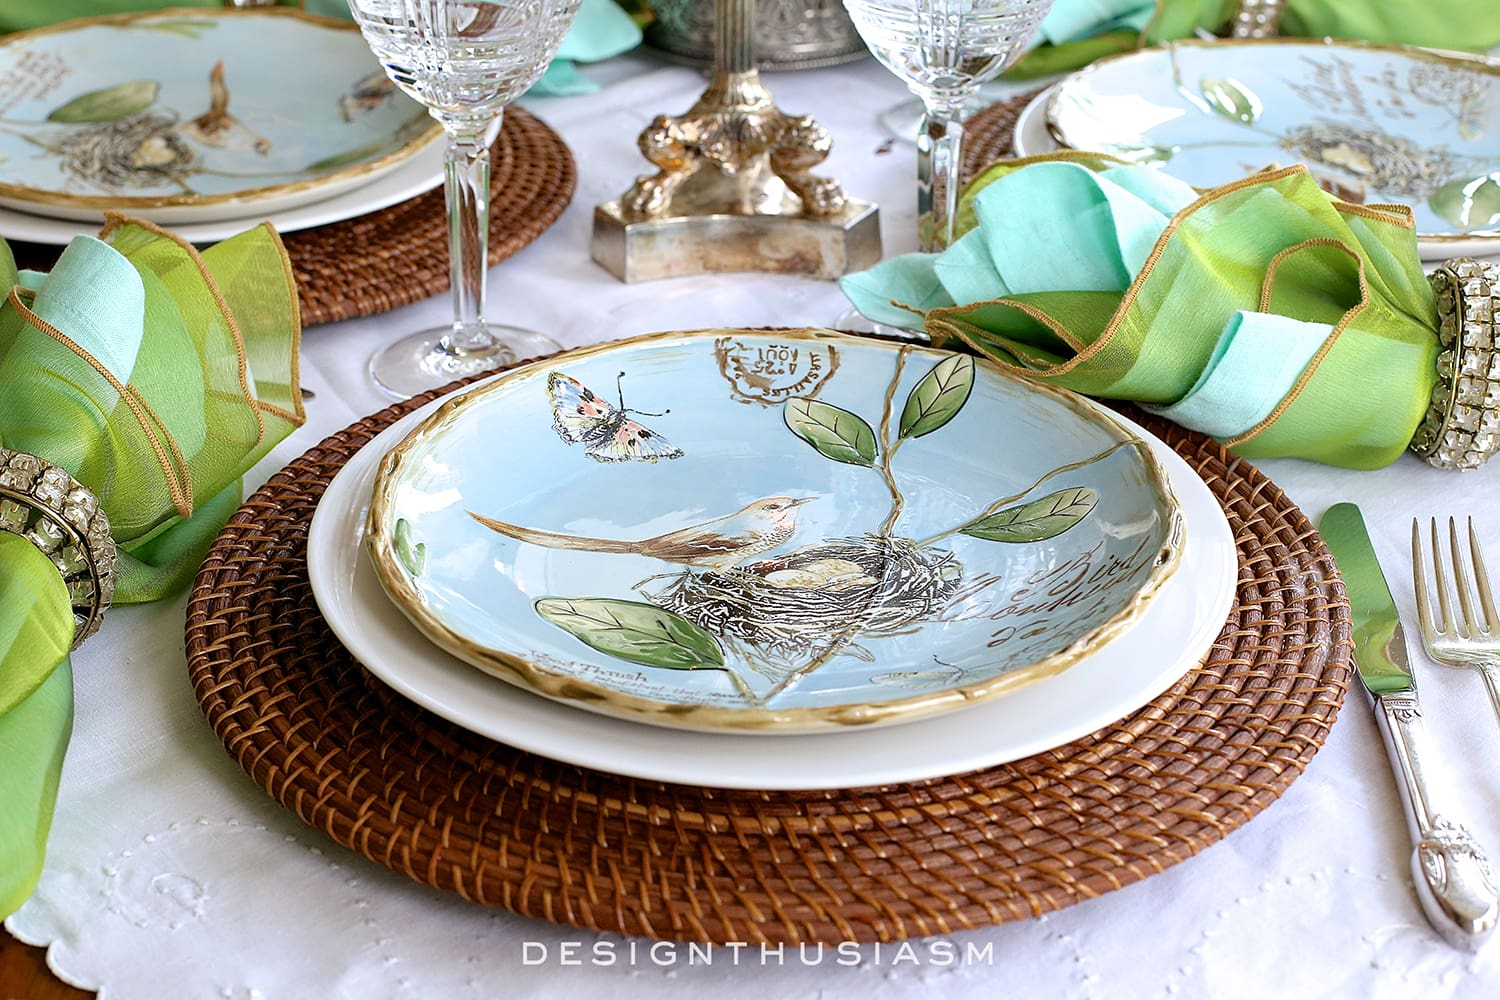 Re-using Patterned Plates with a Completely New Look | Designthusiasm.com